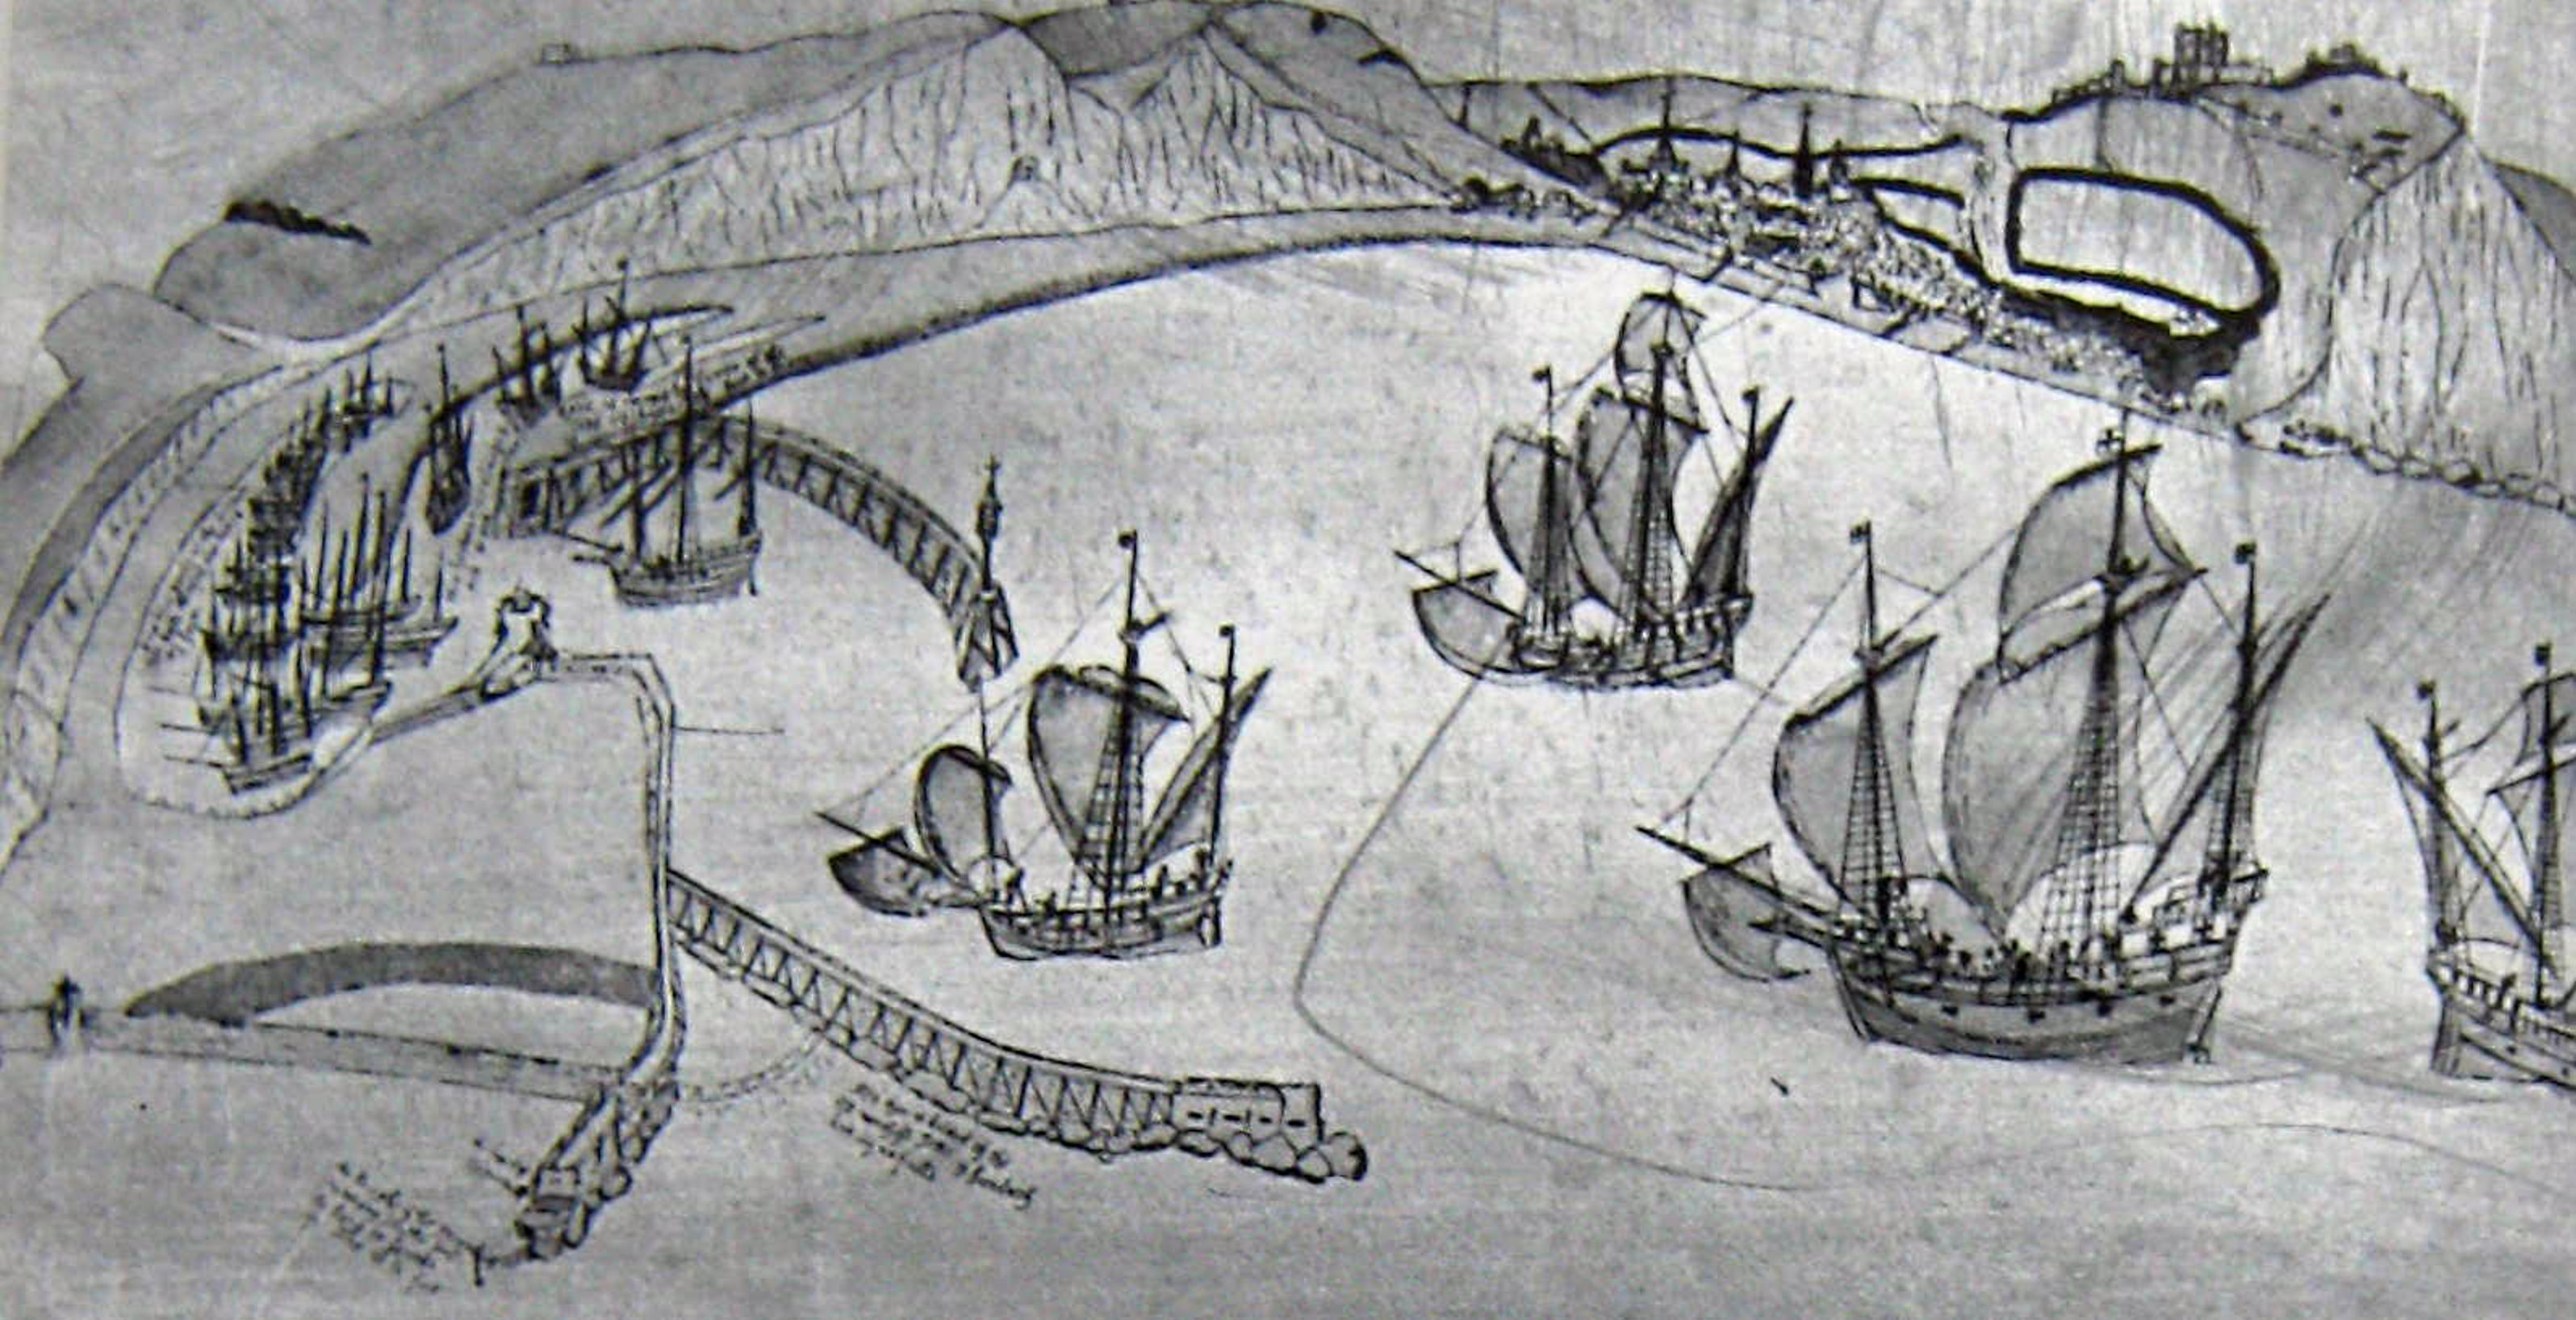 https://doverhistorian.files.wordpress.com/2013/06/th-harbour-c1543-cottonian-manuscript-hollingsbee-3.jpg